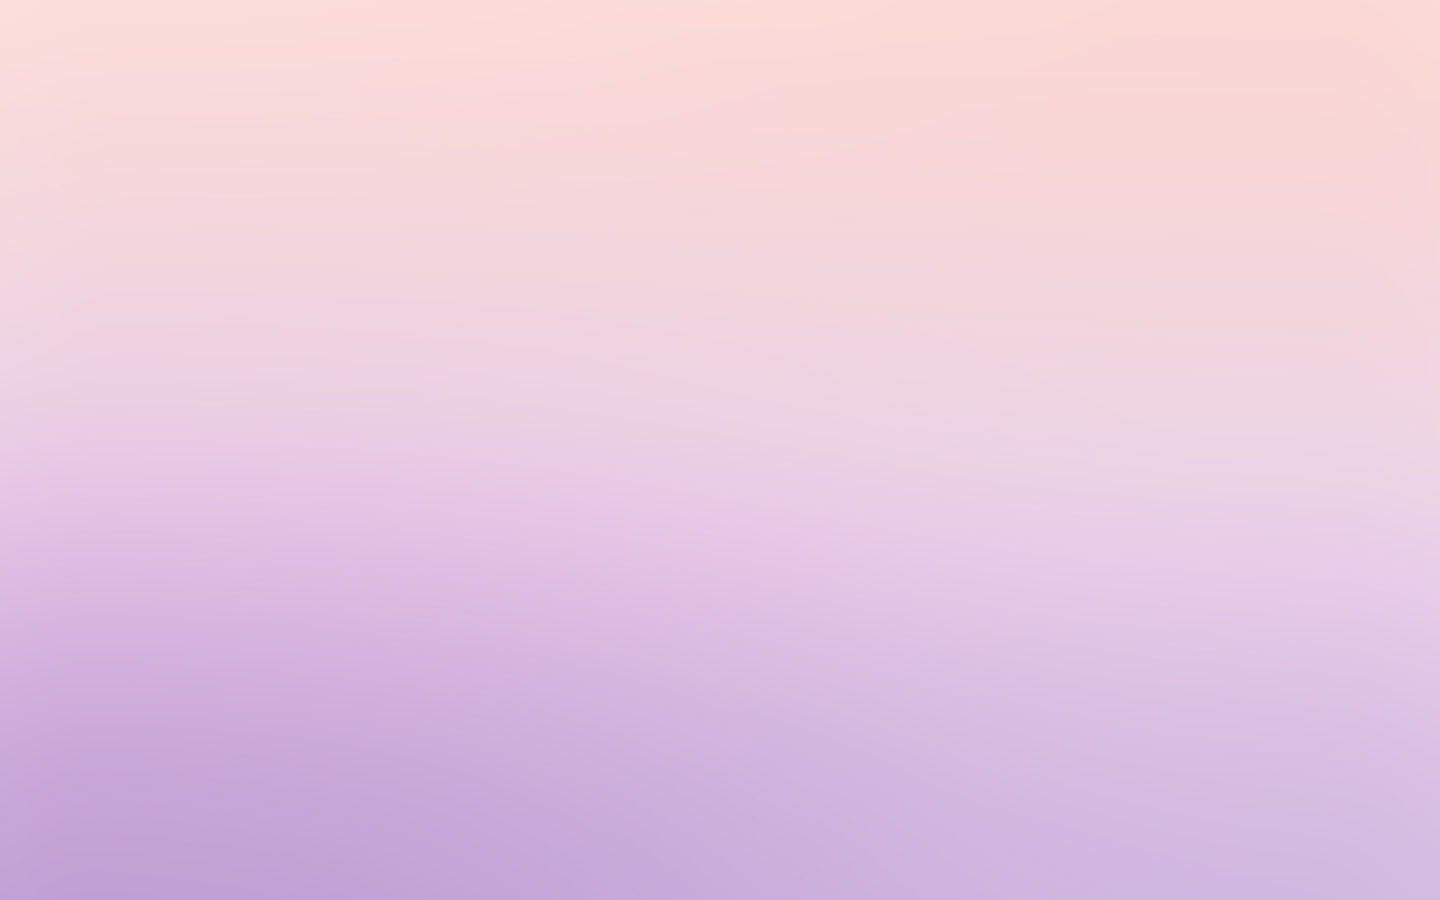 Wallpaper For Desktop Laptop Sm47 Pastel Purple Blur Gradation